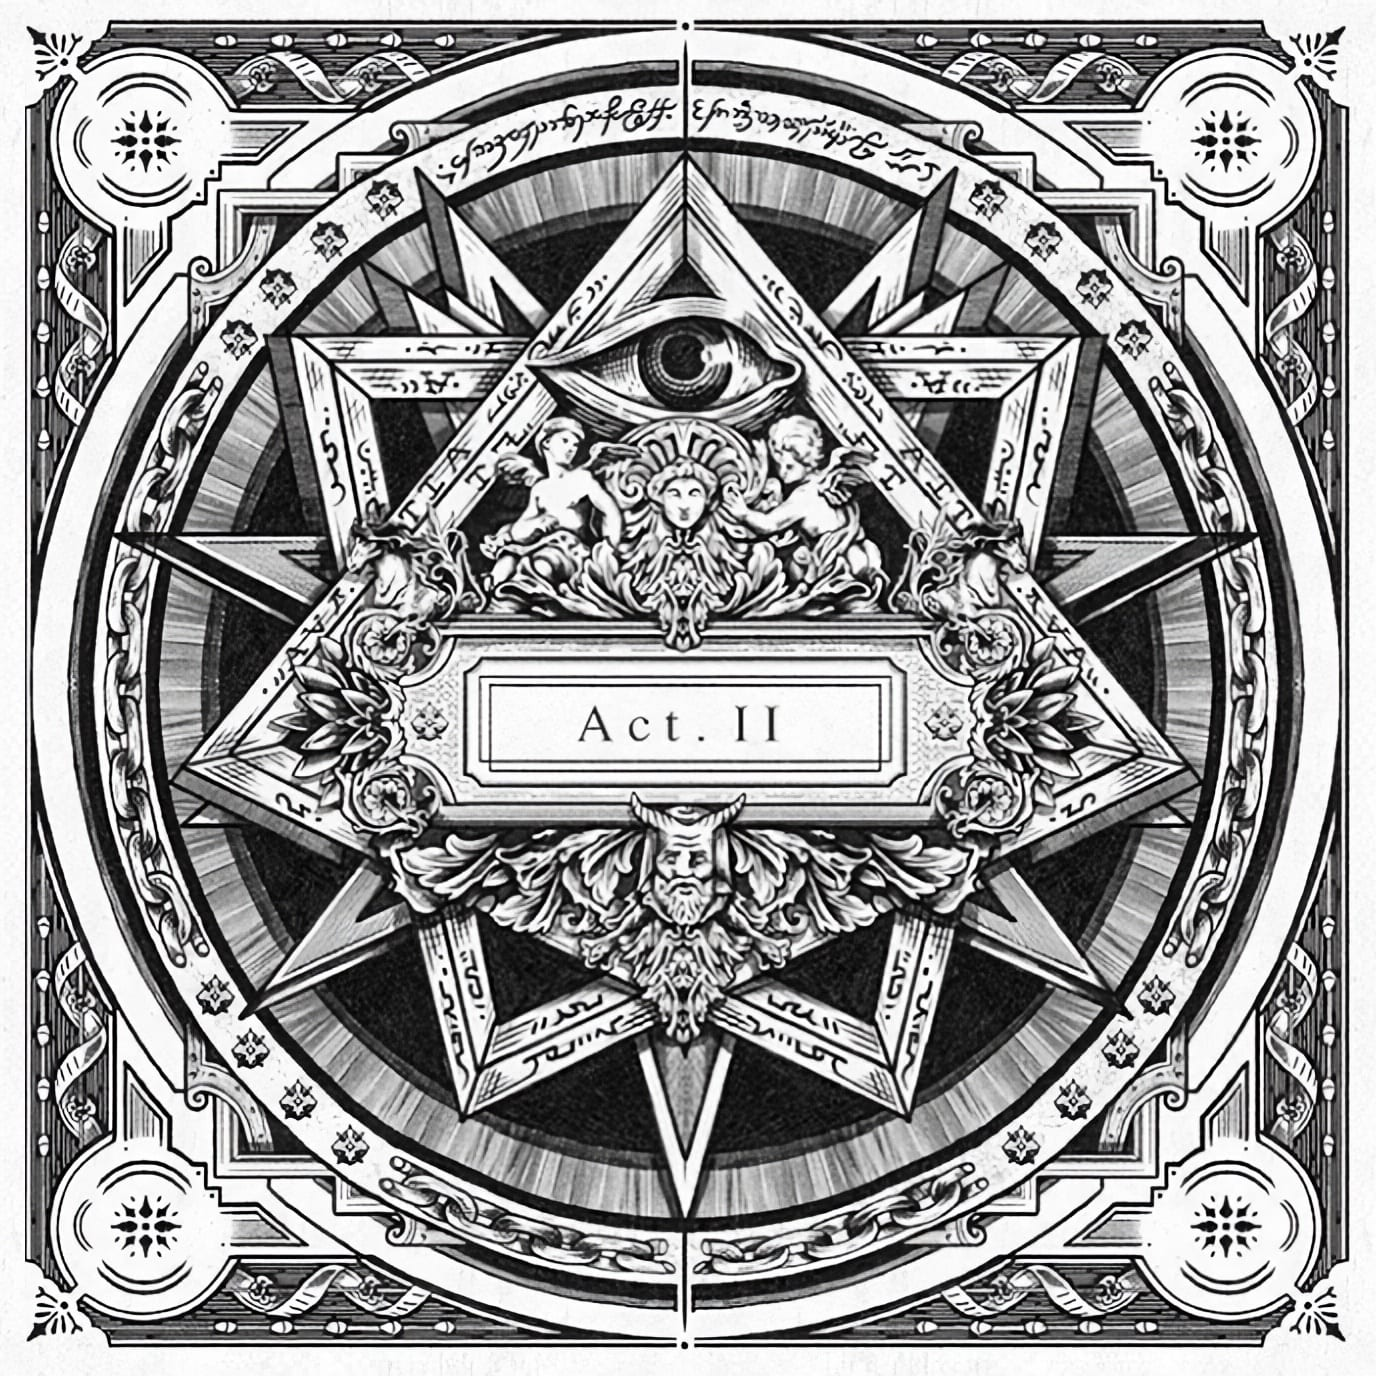 Jay Electronica - Act II: The Patents of Nobility (the Turn)